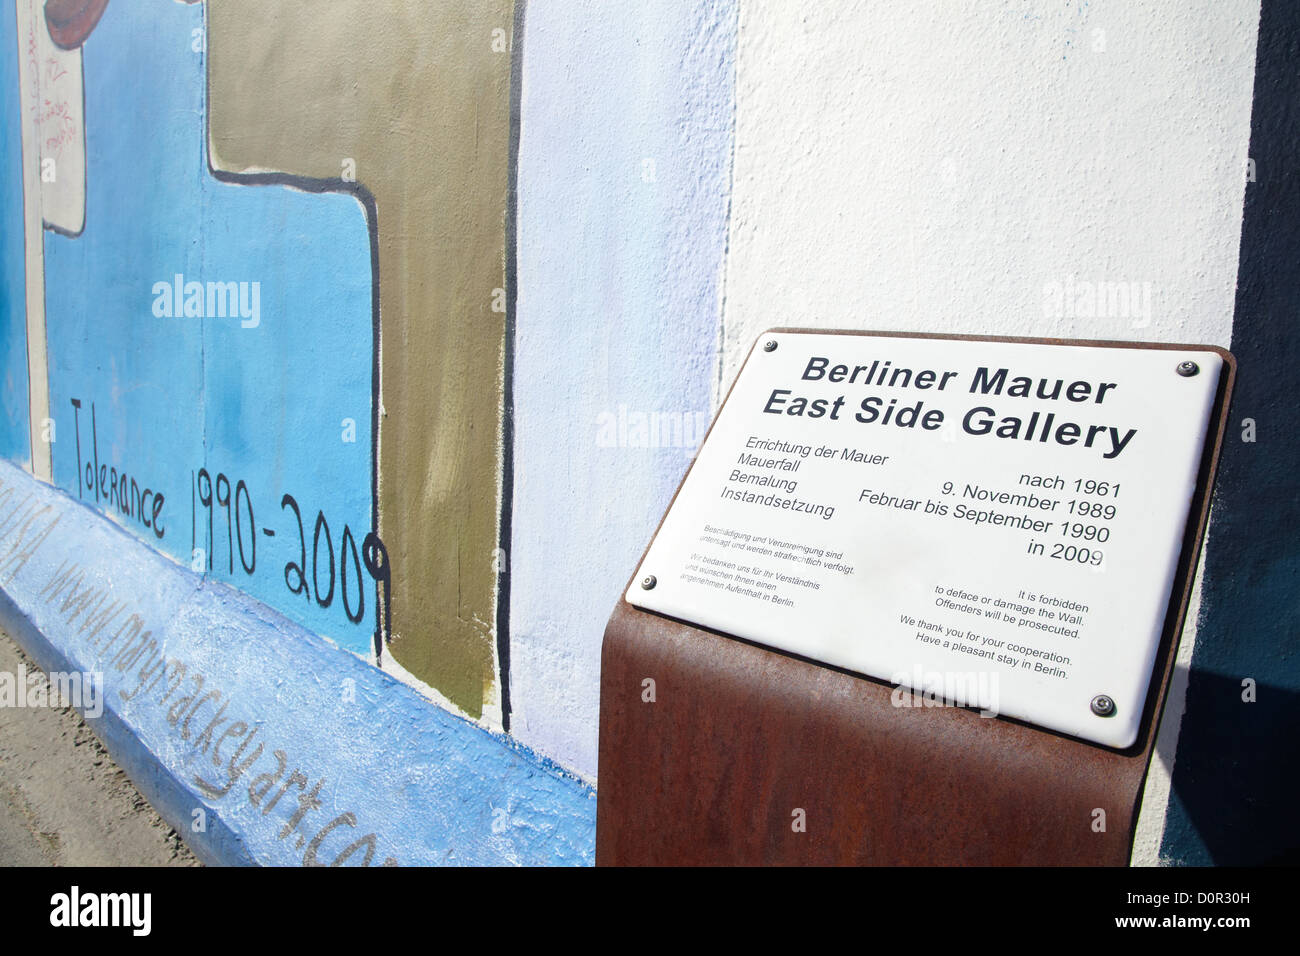 East Side Gallery sign in Berlin Photo Stock